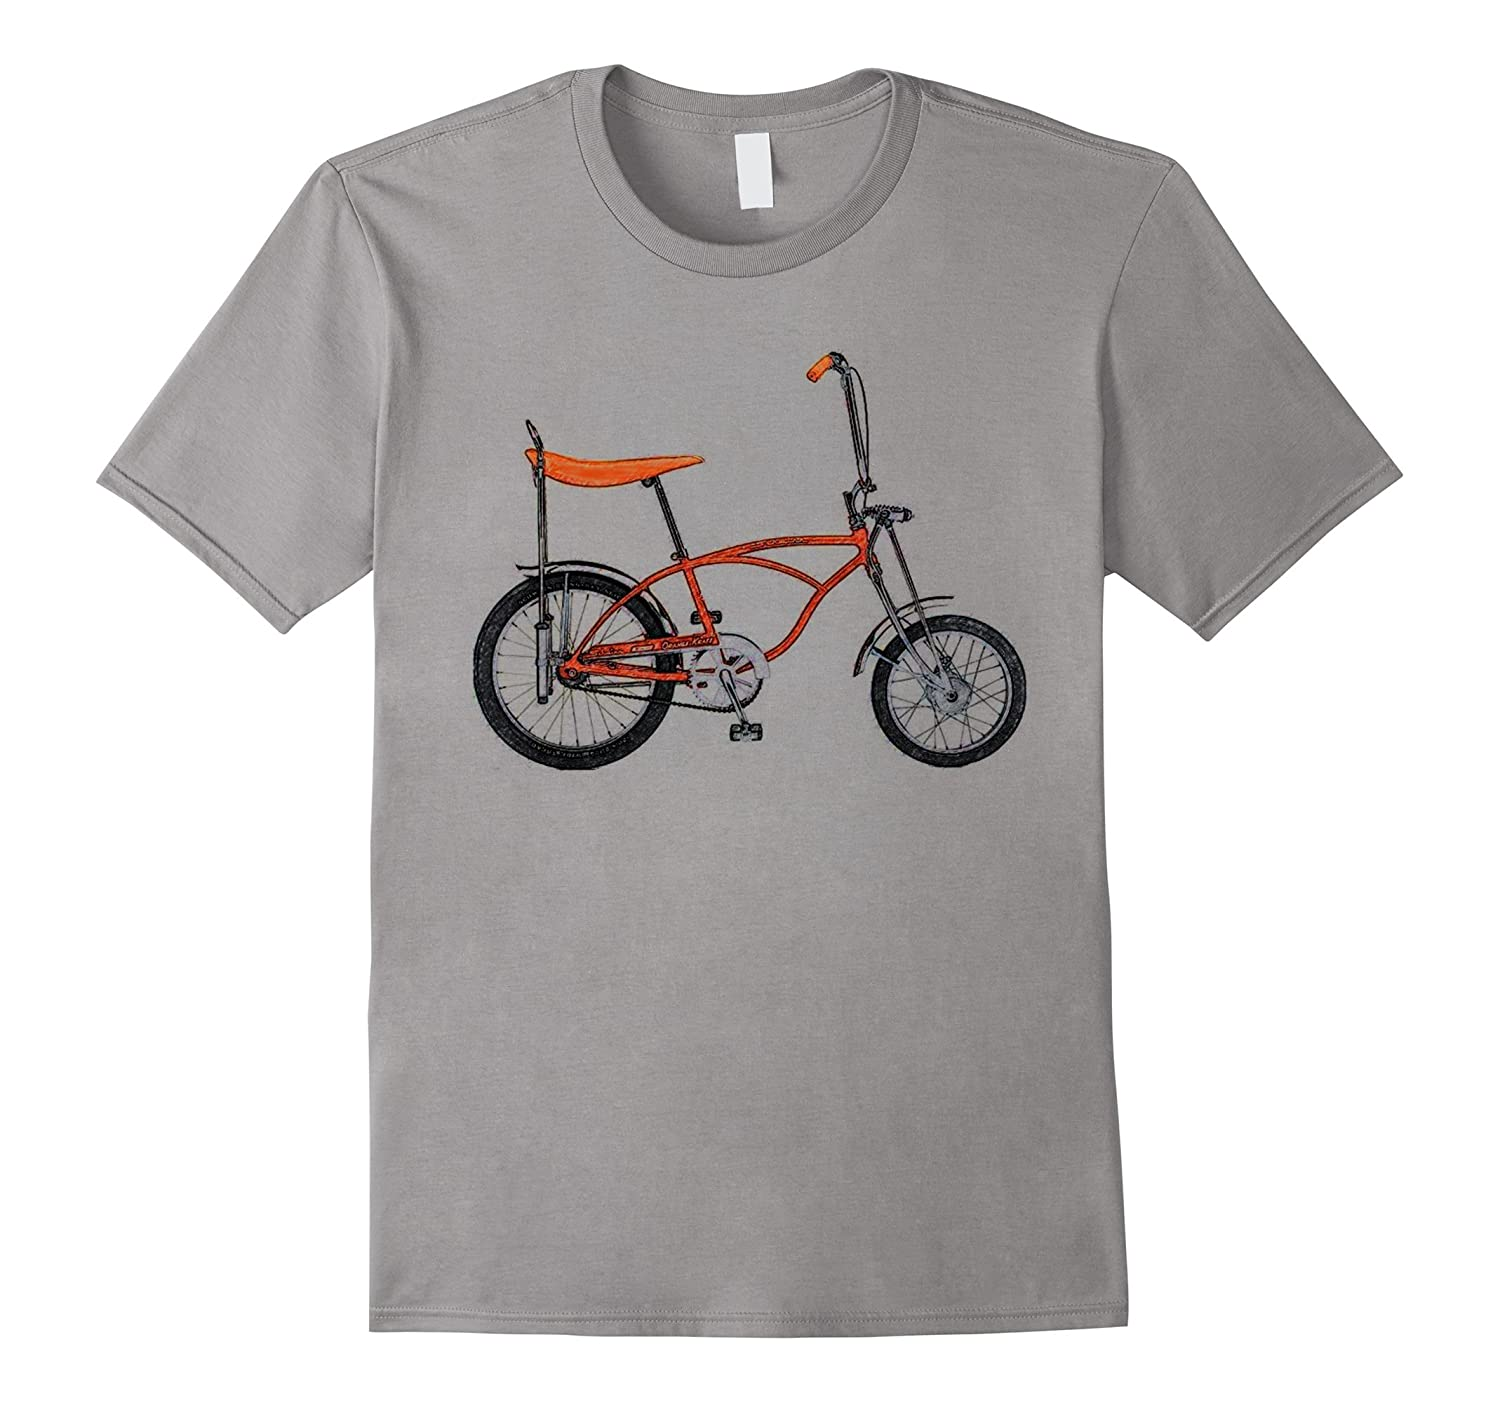 1970s Vintage Retro Banana Seat Bicycle Sketch Tee-T-Shirt